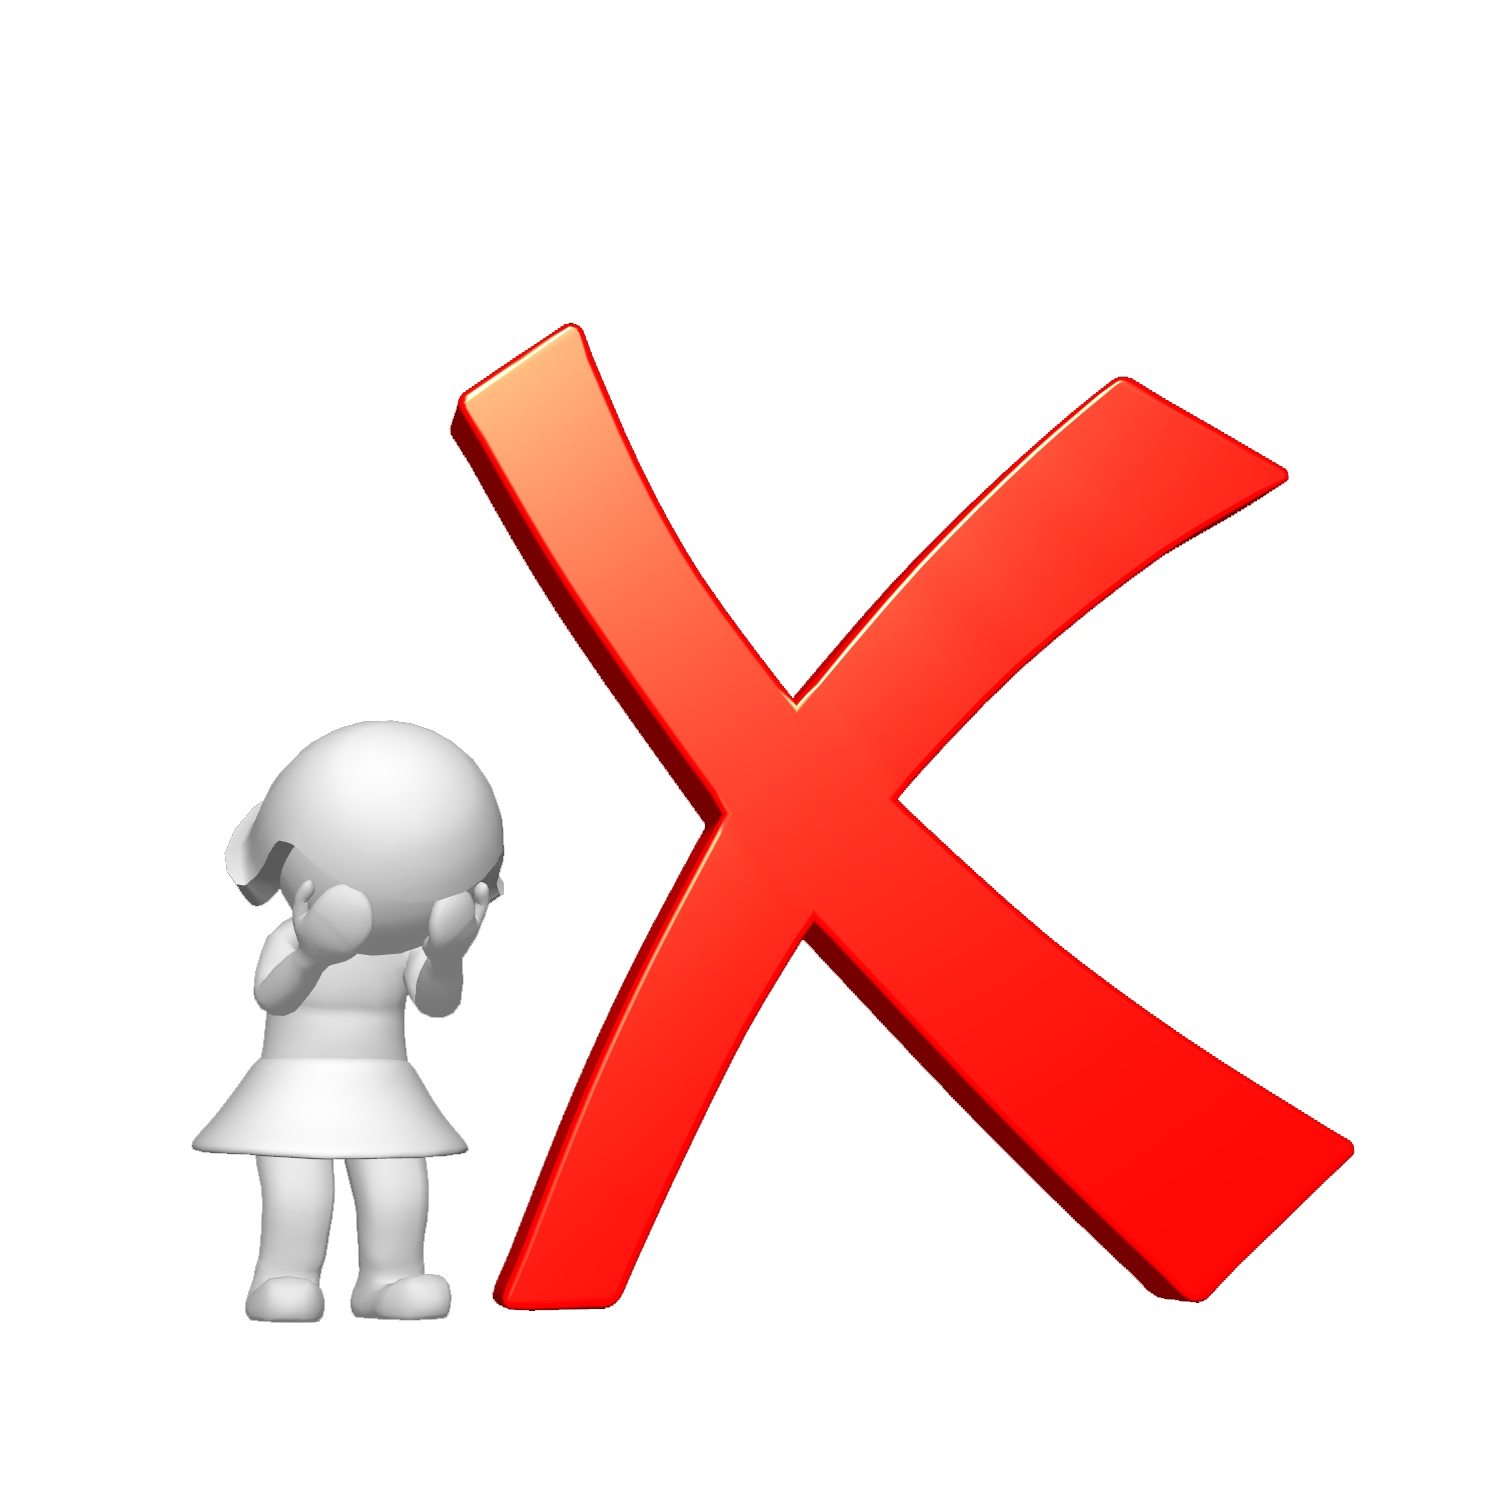 Free Wrong Cliparts, Download Free Clip Art, Free Clip Art.